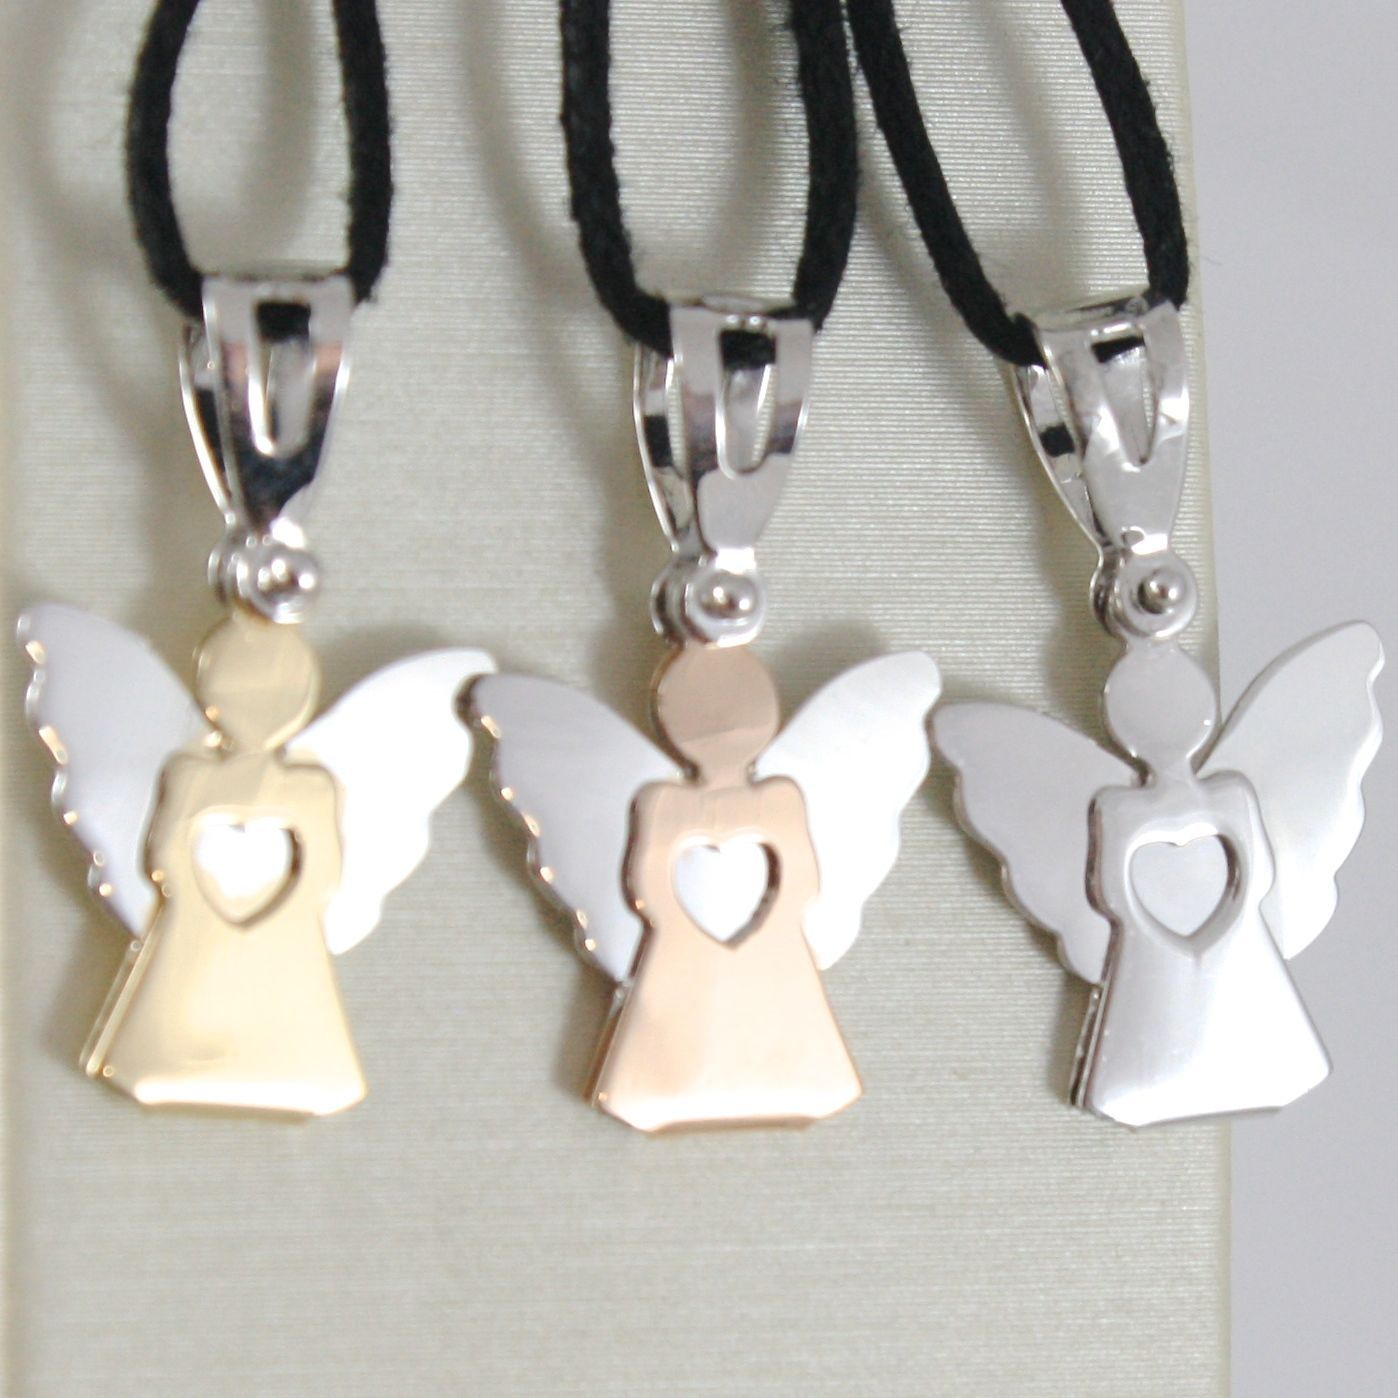 WHITE GOLD PENDANT, YELLOW AND 0,5 ROSE 18K, ANGEL GUARDIAN, HEART